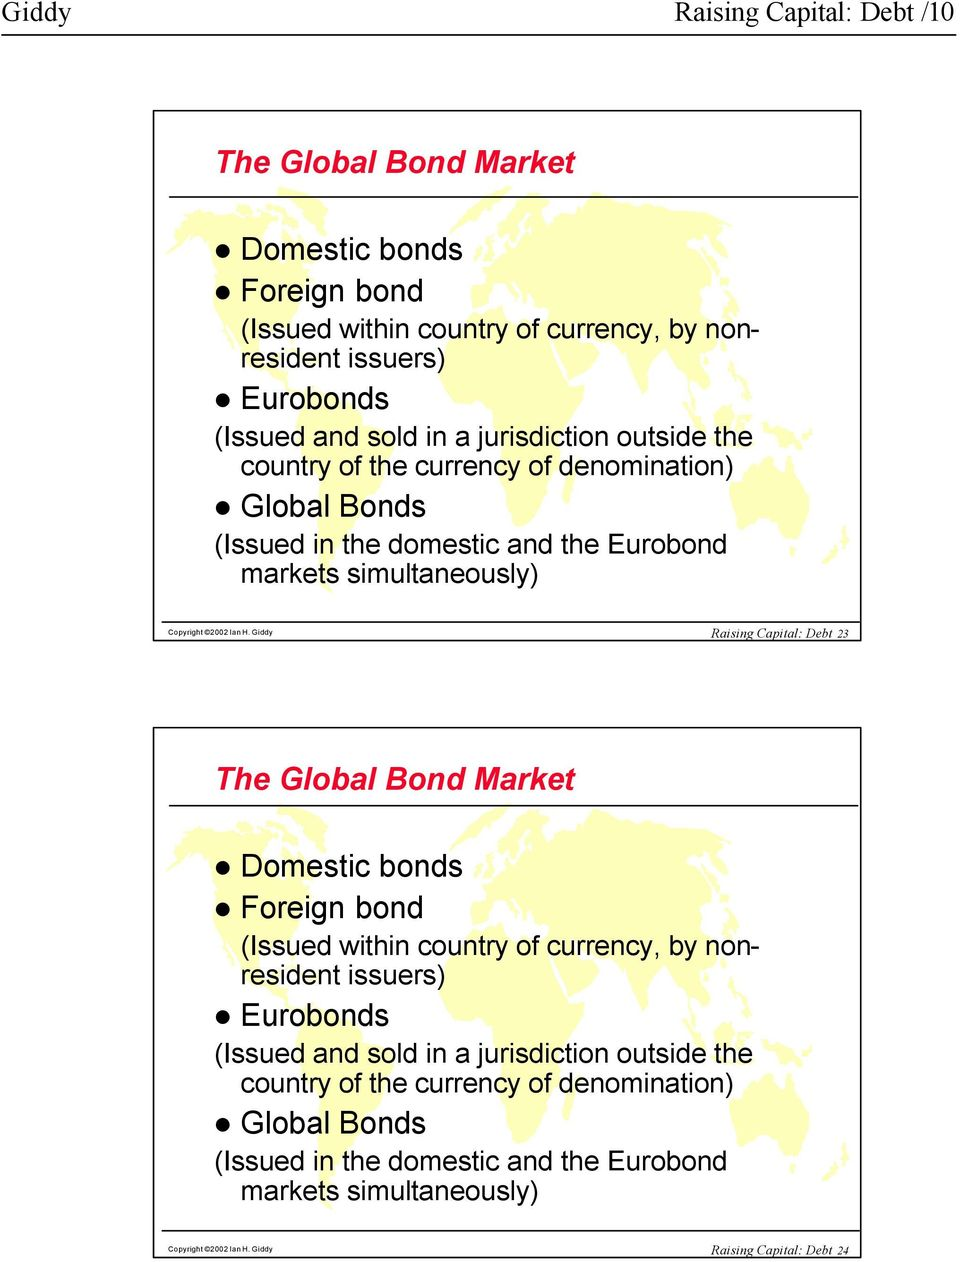 Giddy Raising Capital: Debt 23 The Global Bond Market Domestic bonds Foreign bond (Issued within country of currency, by nonresident issuers) Eurobonds (Issued and sold in a